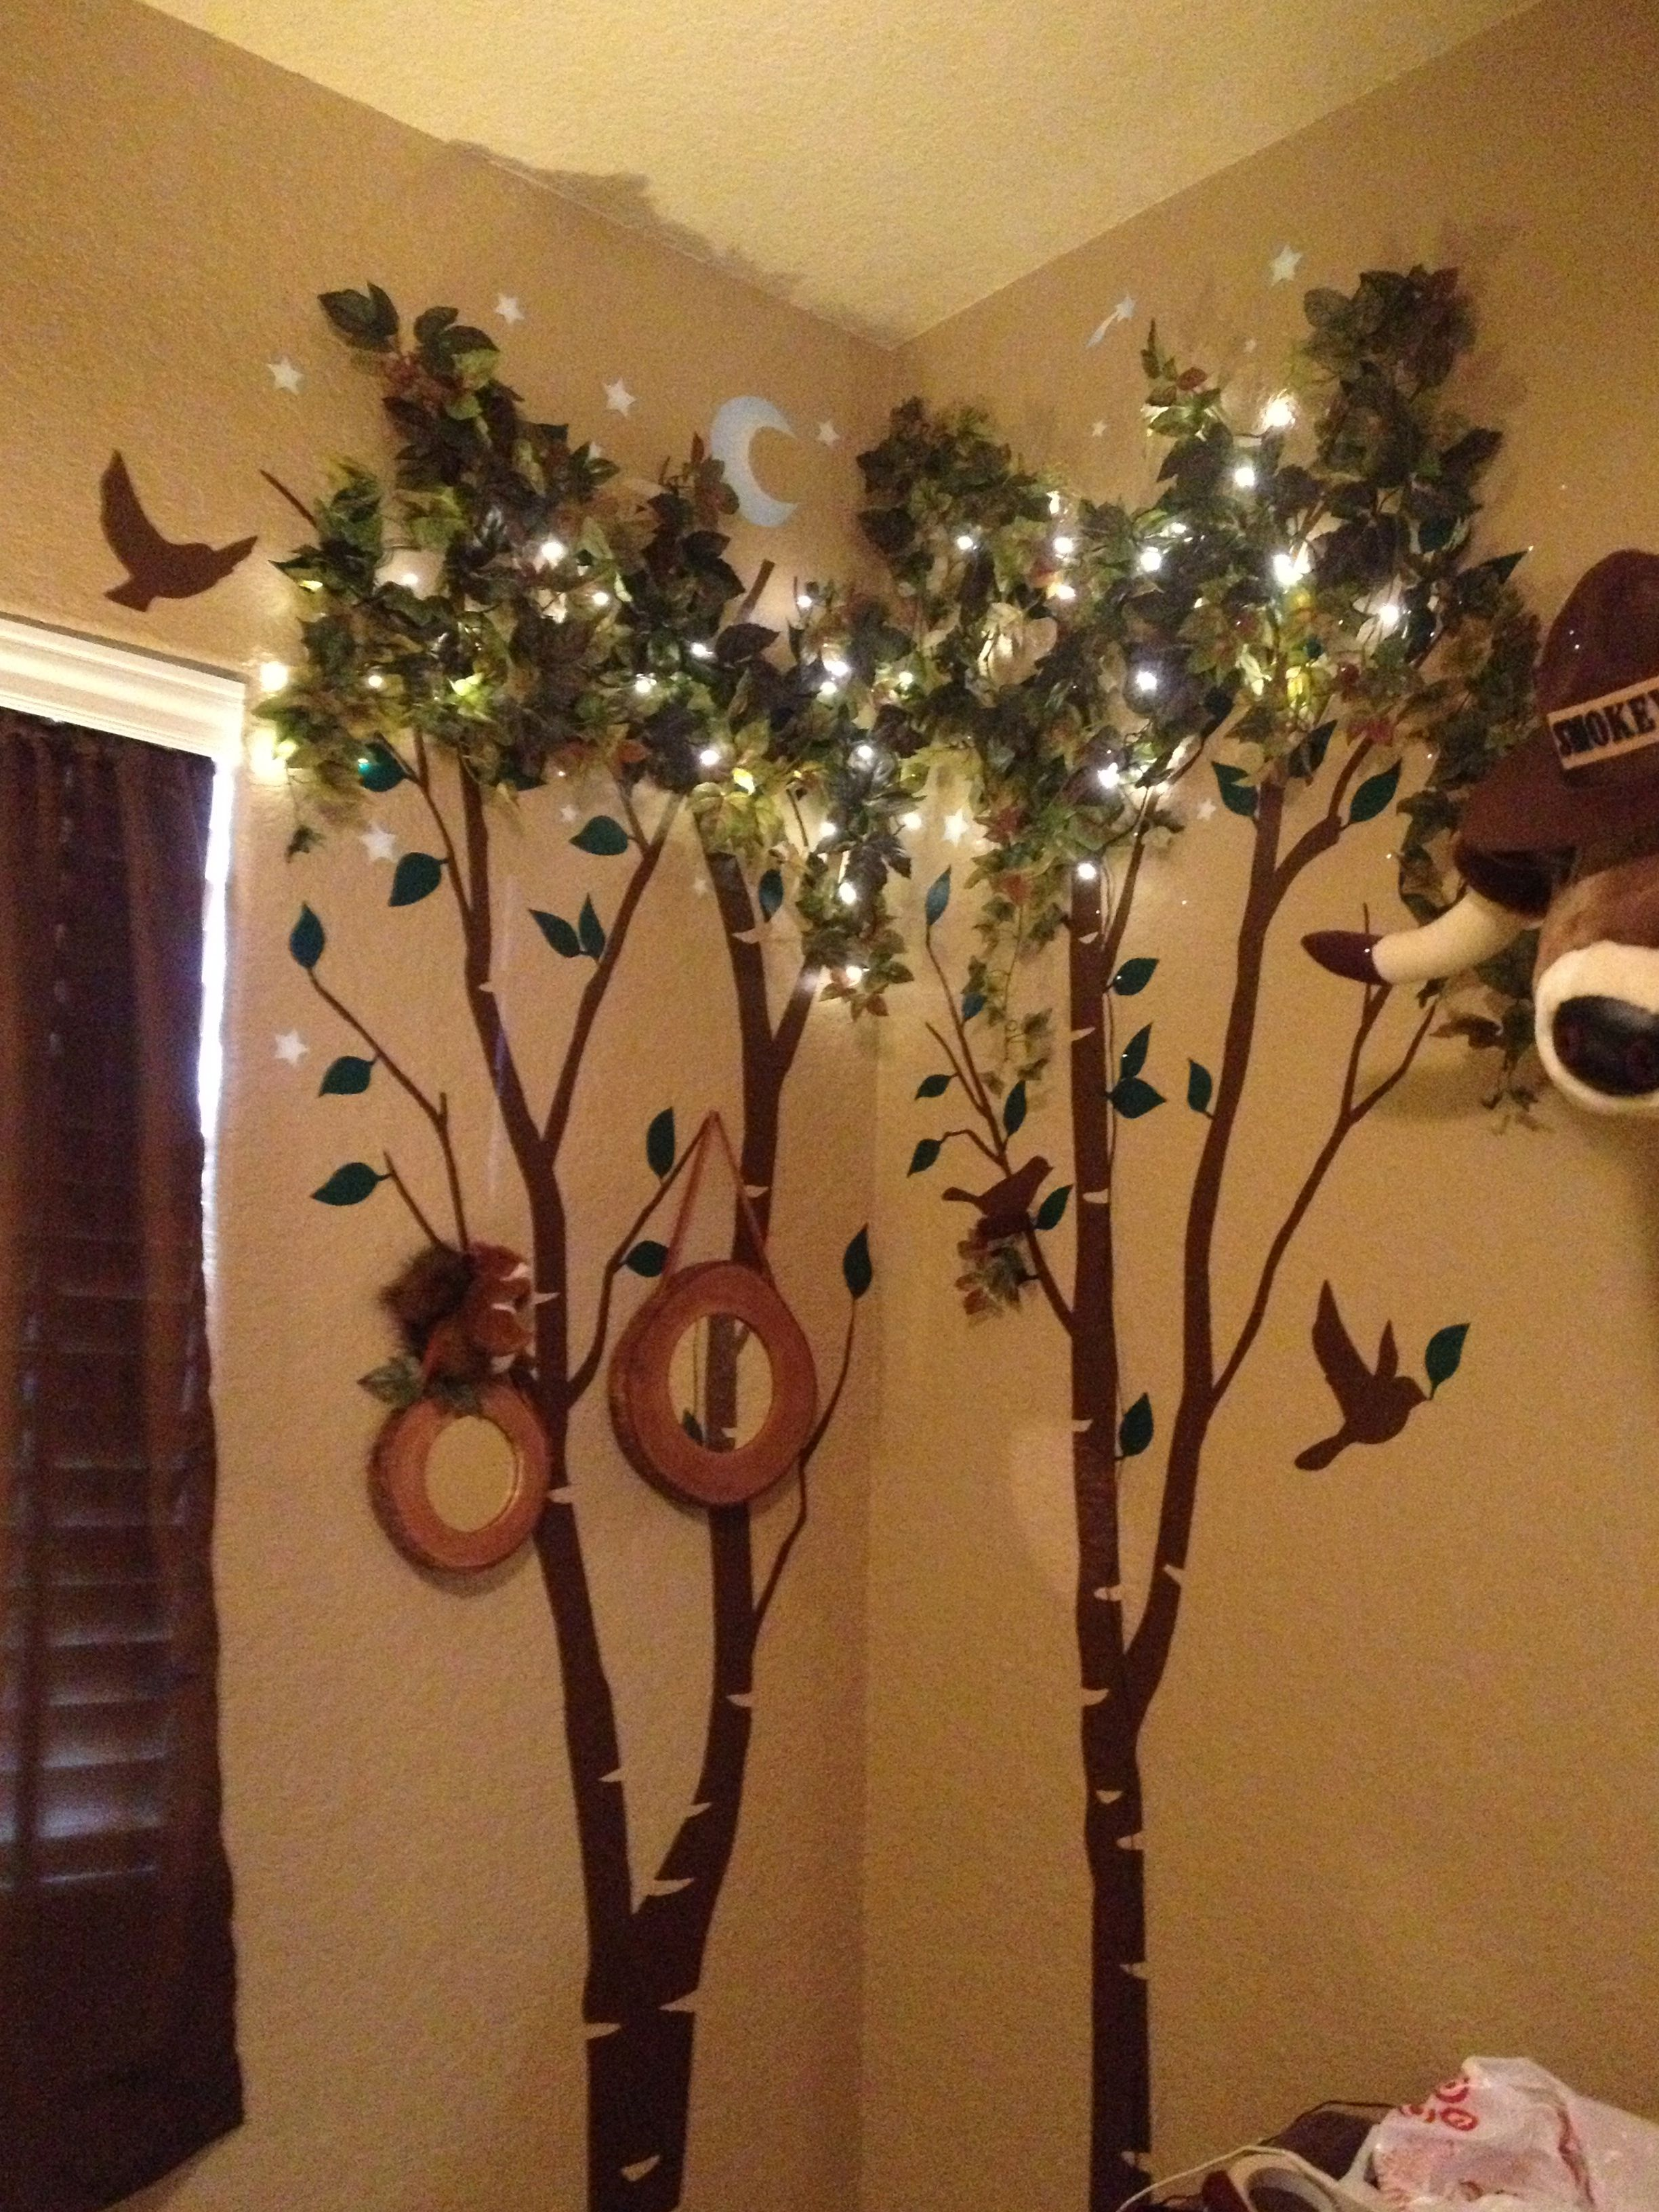 hobby lobby lights - 100 images - battery operated string lights hobby lobby led with remote ...